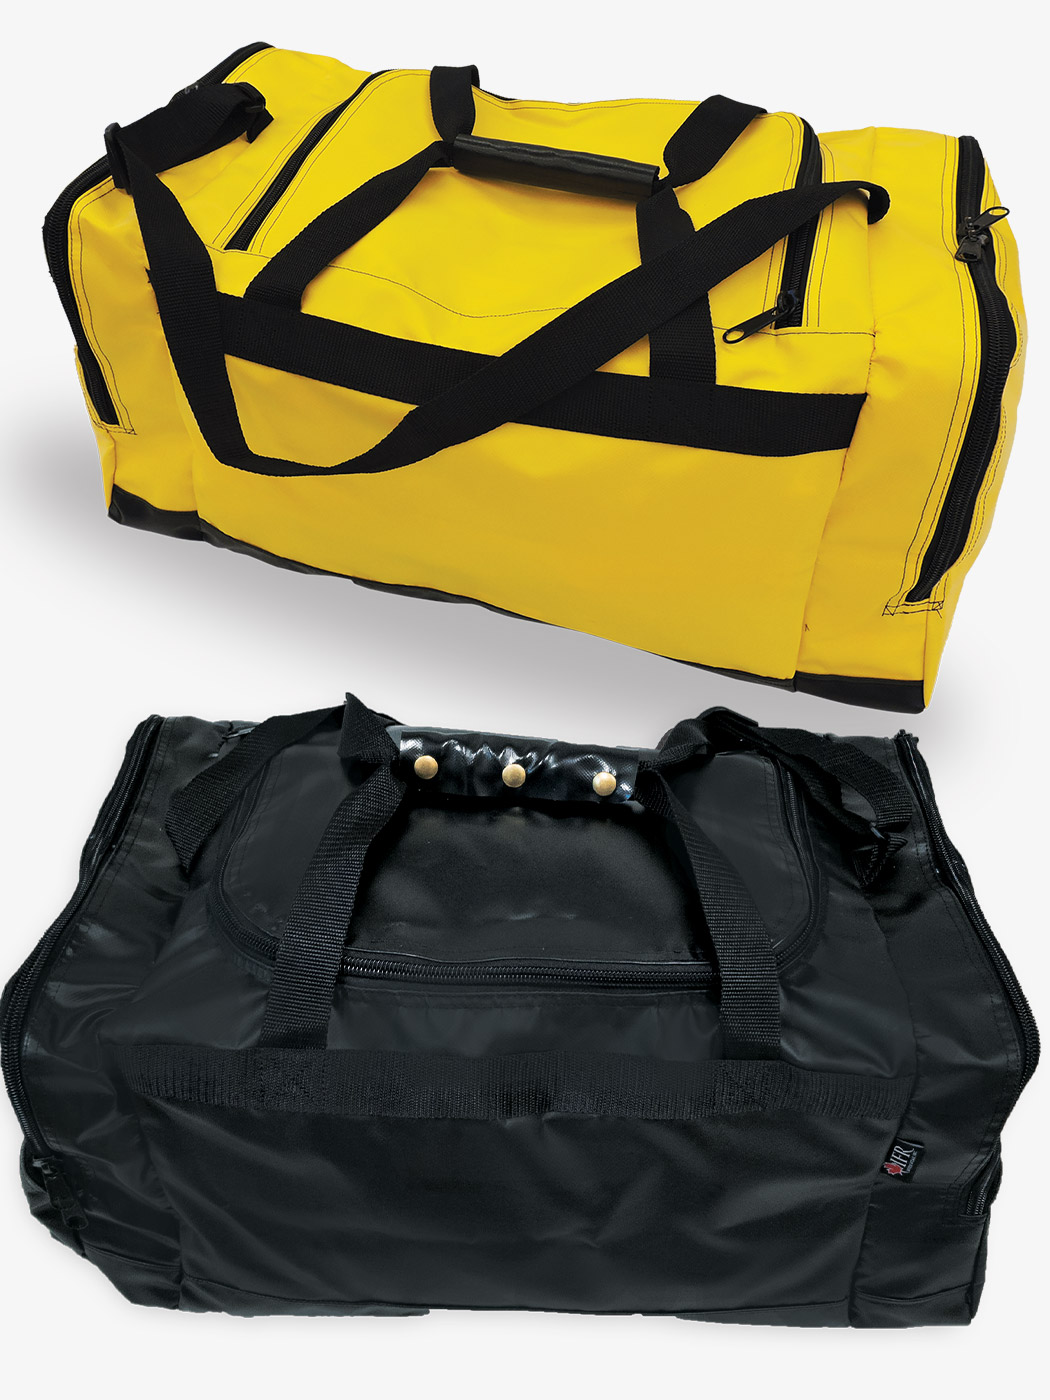 PPE Duffle Bag – Style 3110